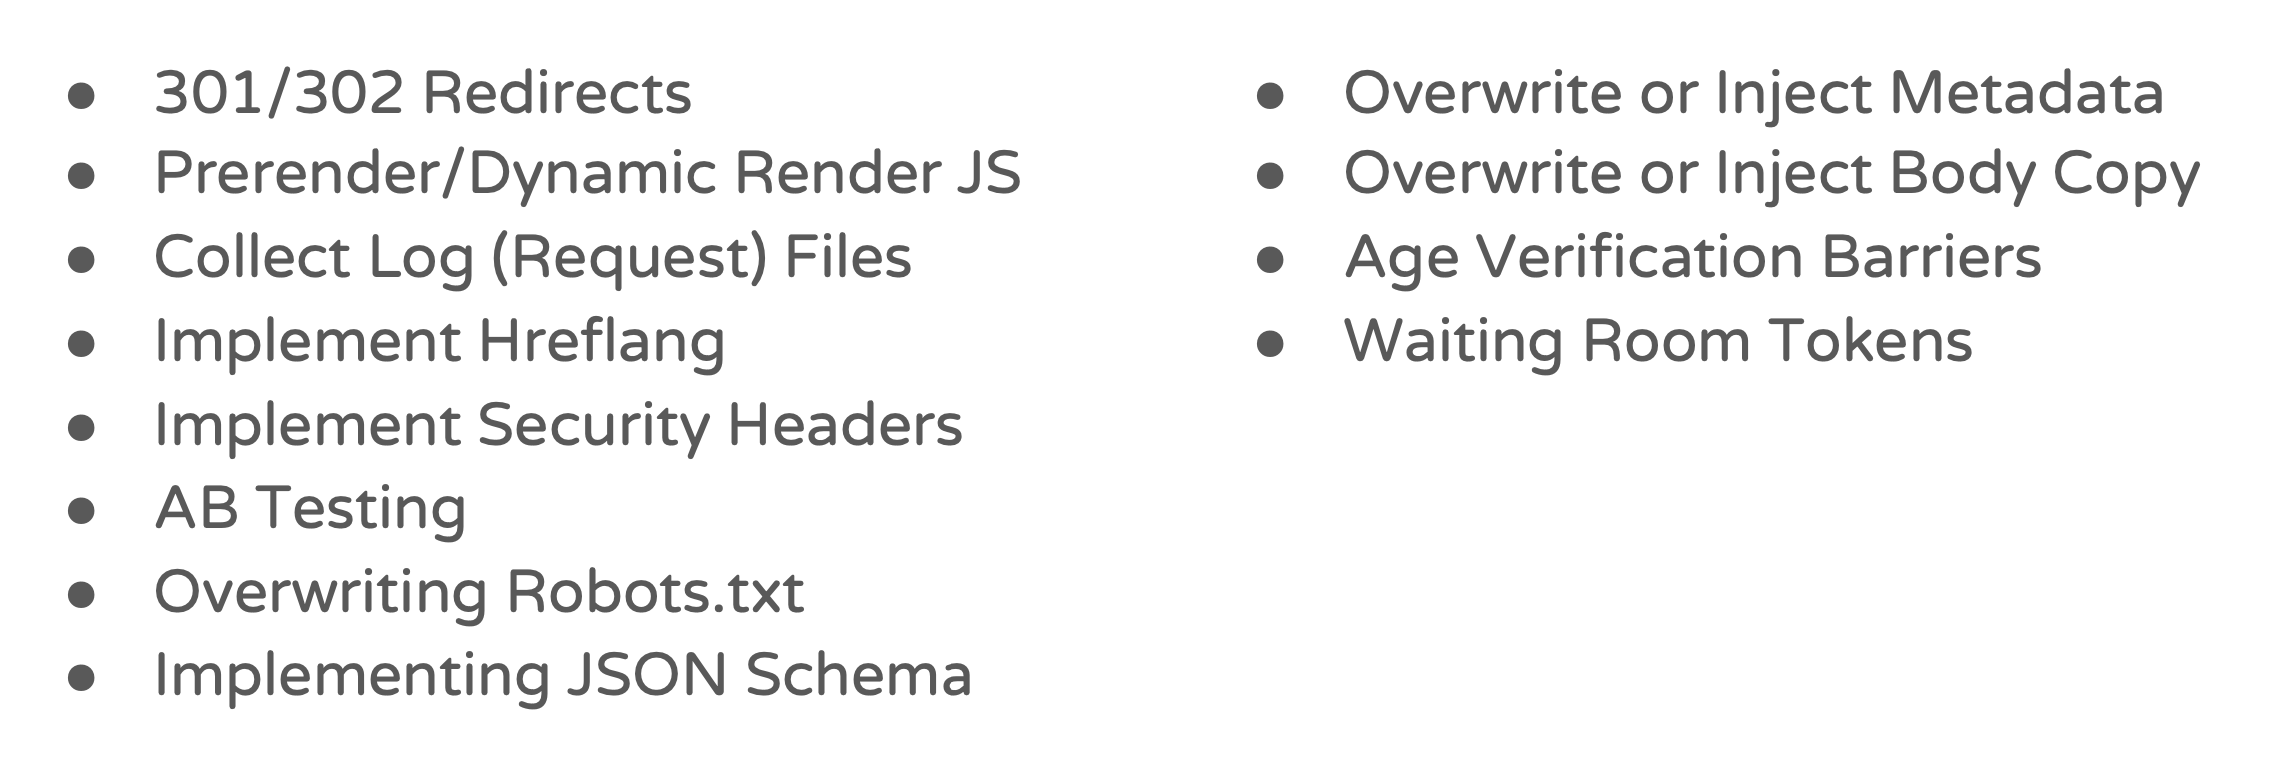 Potential edge SEO applications and automations.